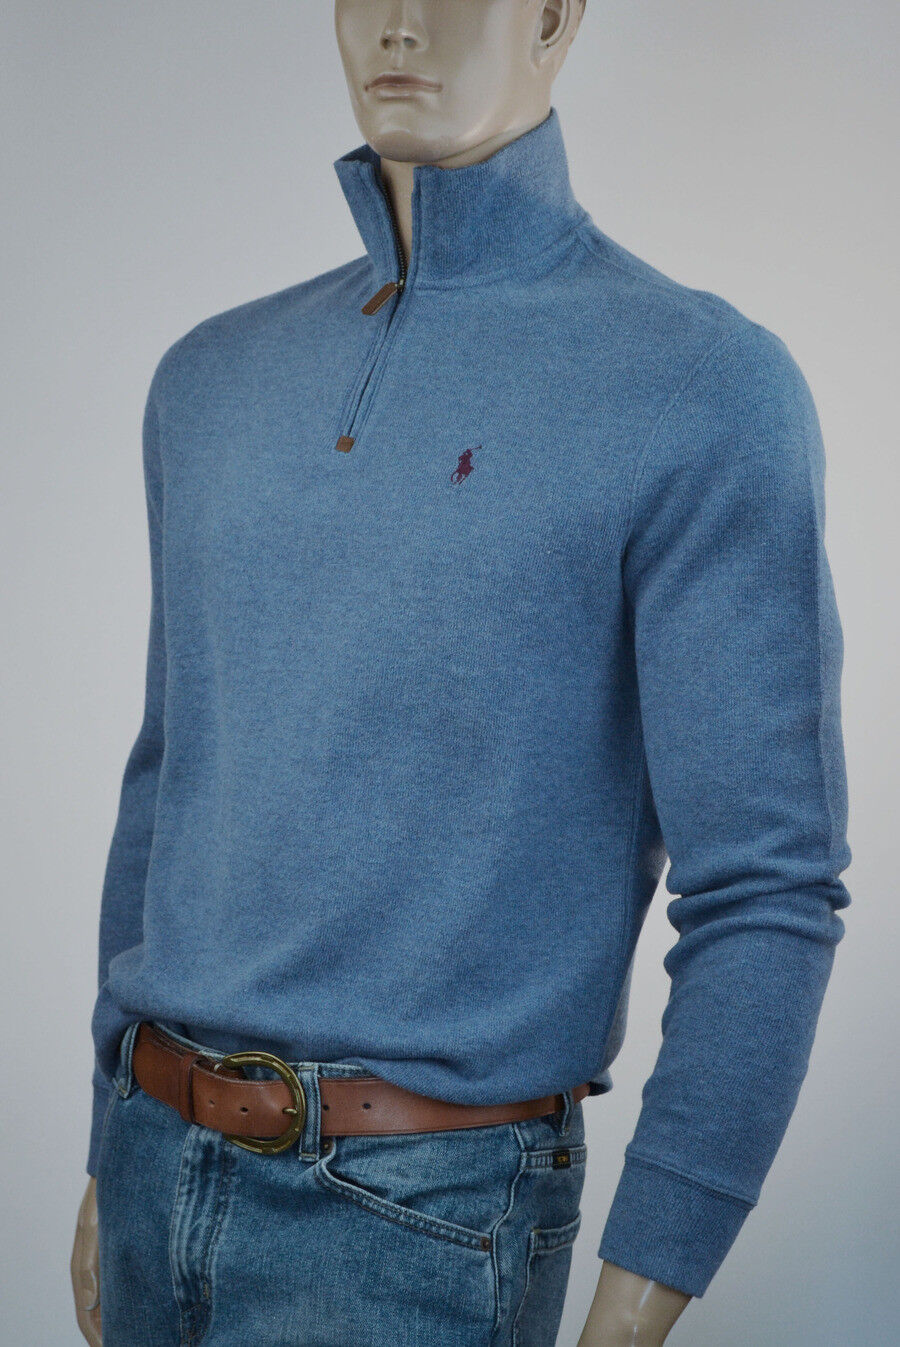 Ralph Lauren French-Ribbed bluee Half-Zip Sweater Burgundy Pony -NWT